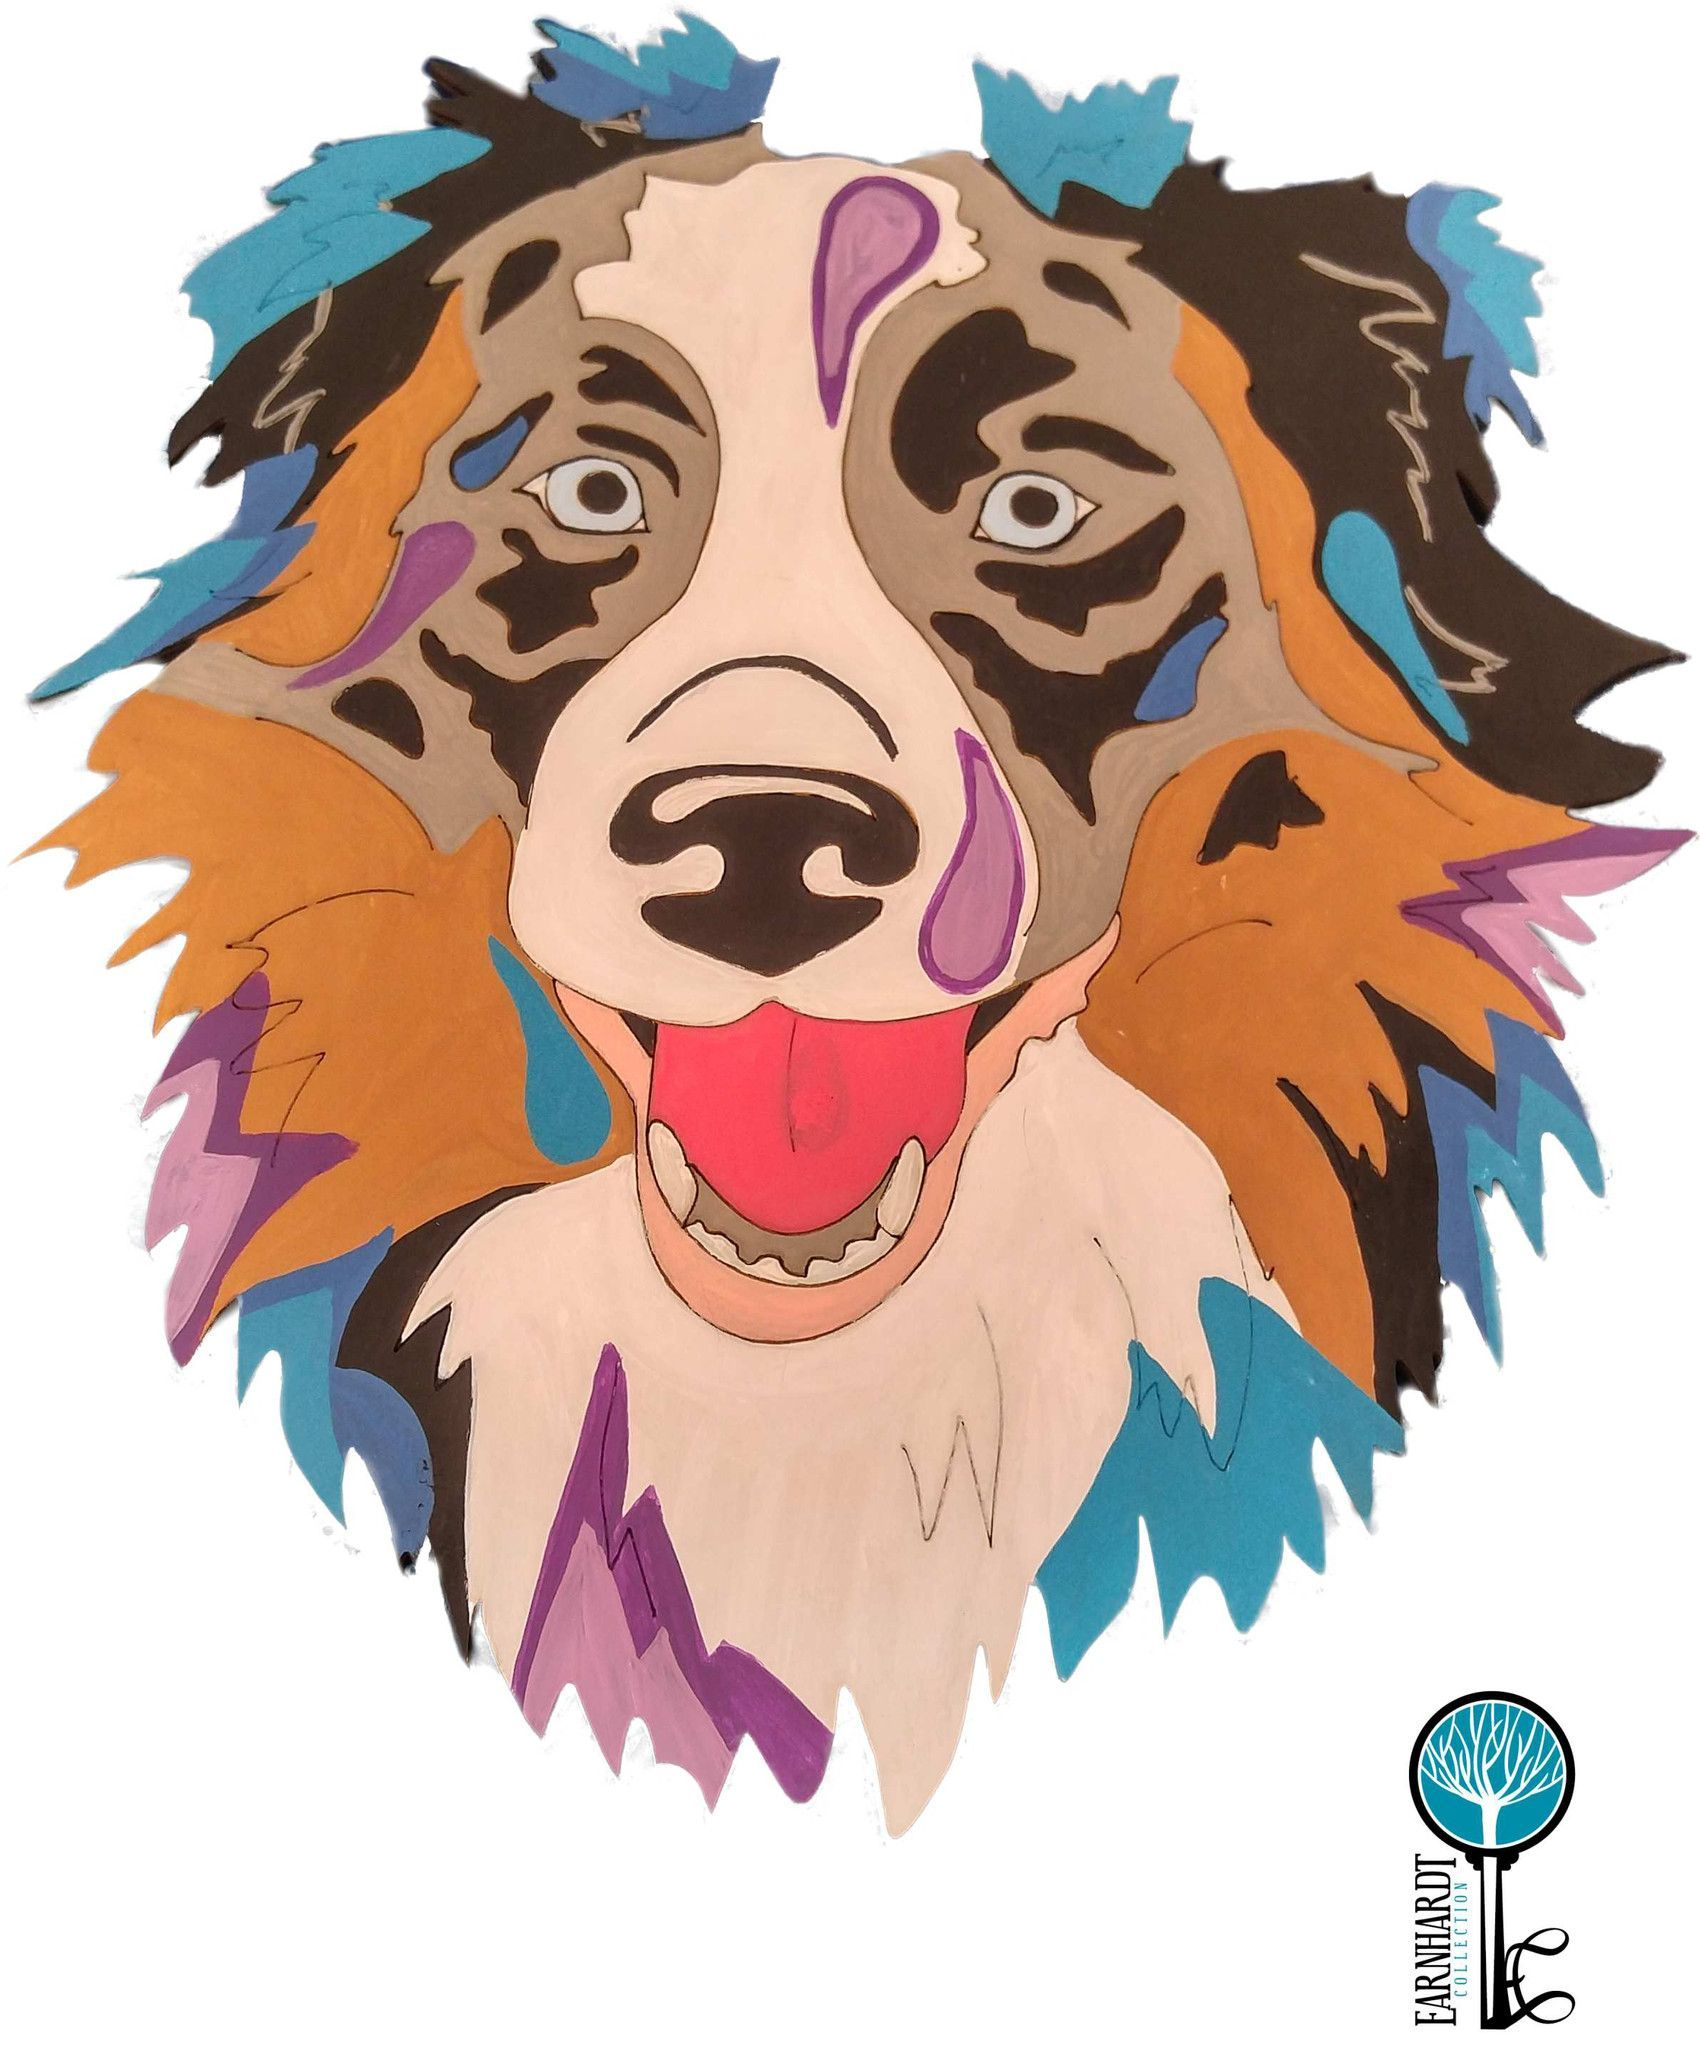 Australian shepherd diy pop art paint kit earnhardt collection paint your own pop art australian shepherd fun do it yourself painting kits for beginning painters up to advanced each kit includes a wood cutout solutioingenieria Choice Image